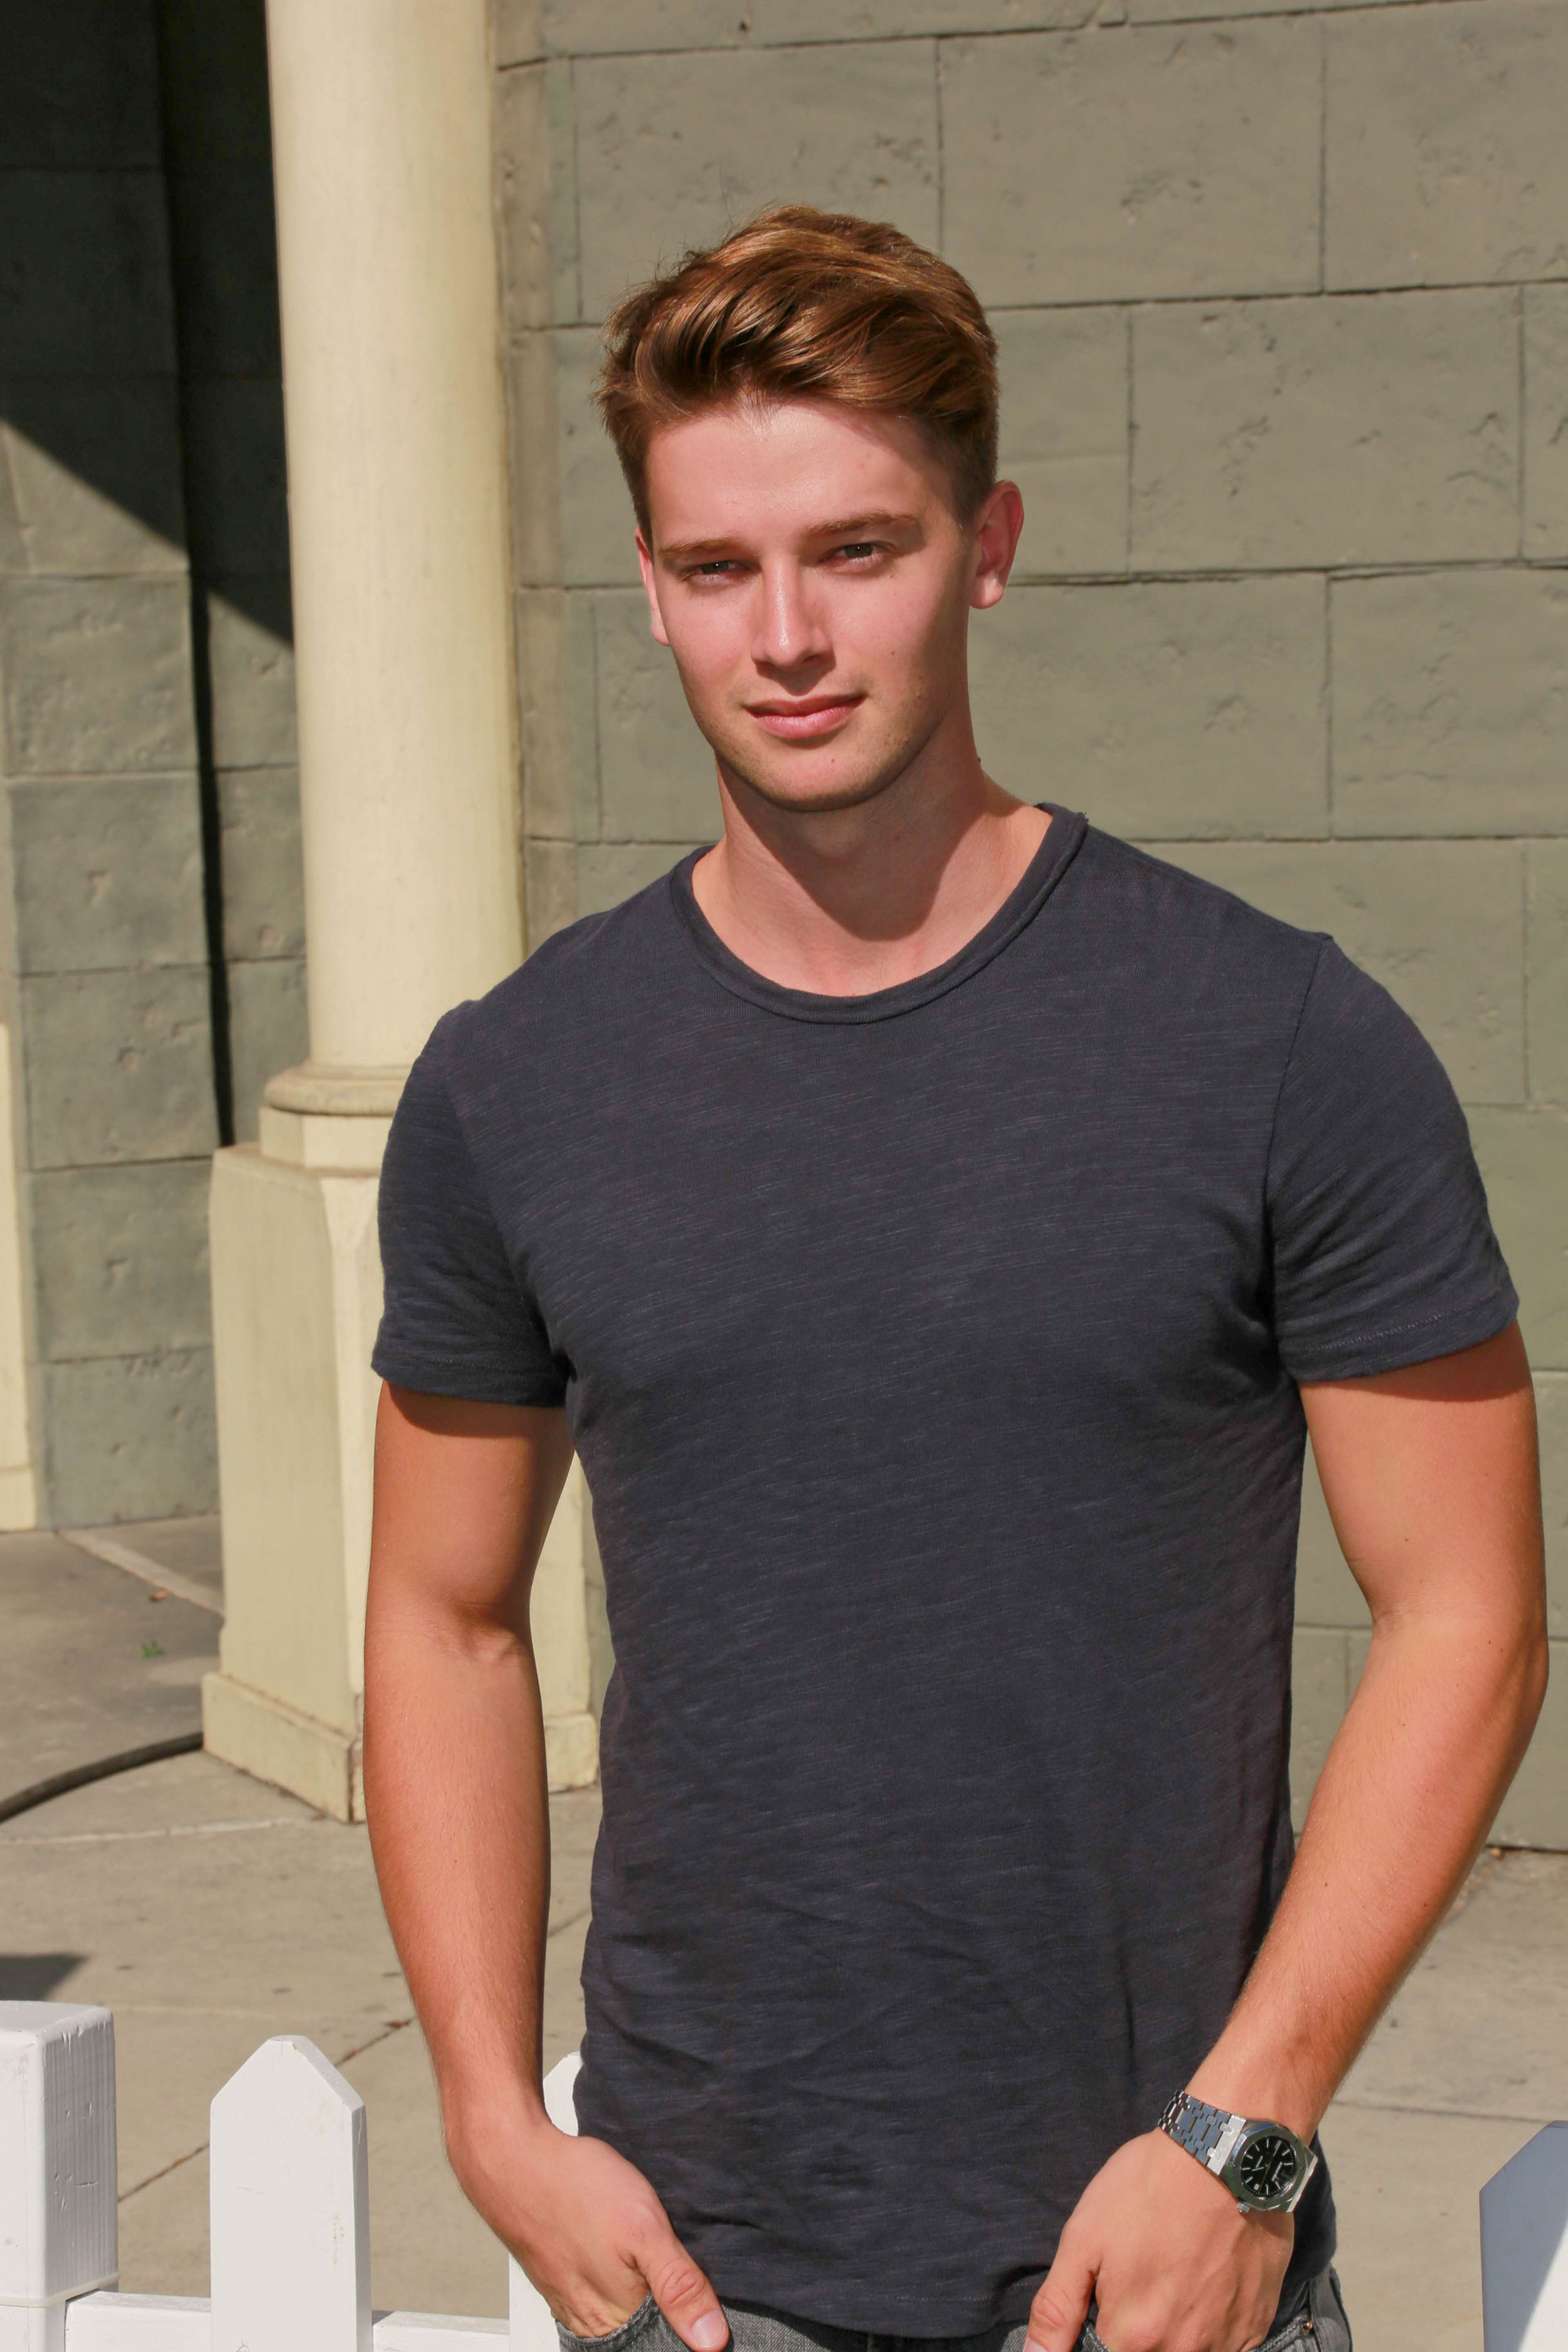 Music Wallpaper Iphone 6 Patrick Schwarzenegger Wallpapers High Quality Download Free